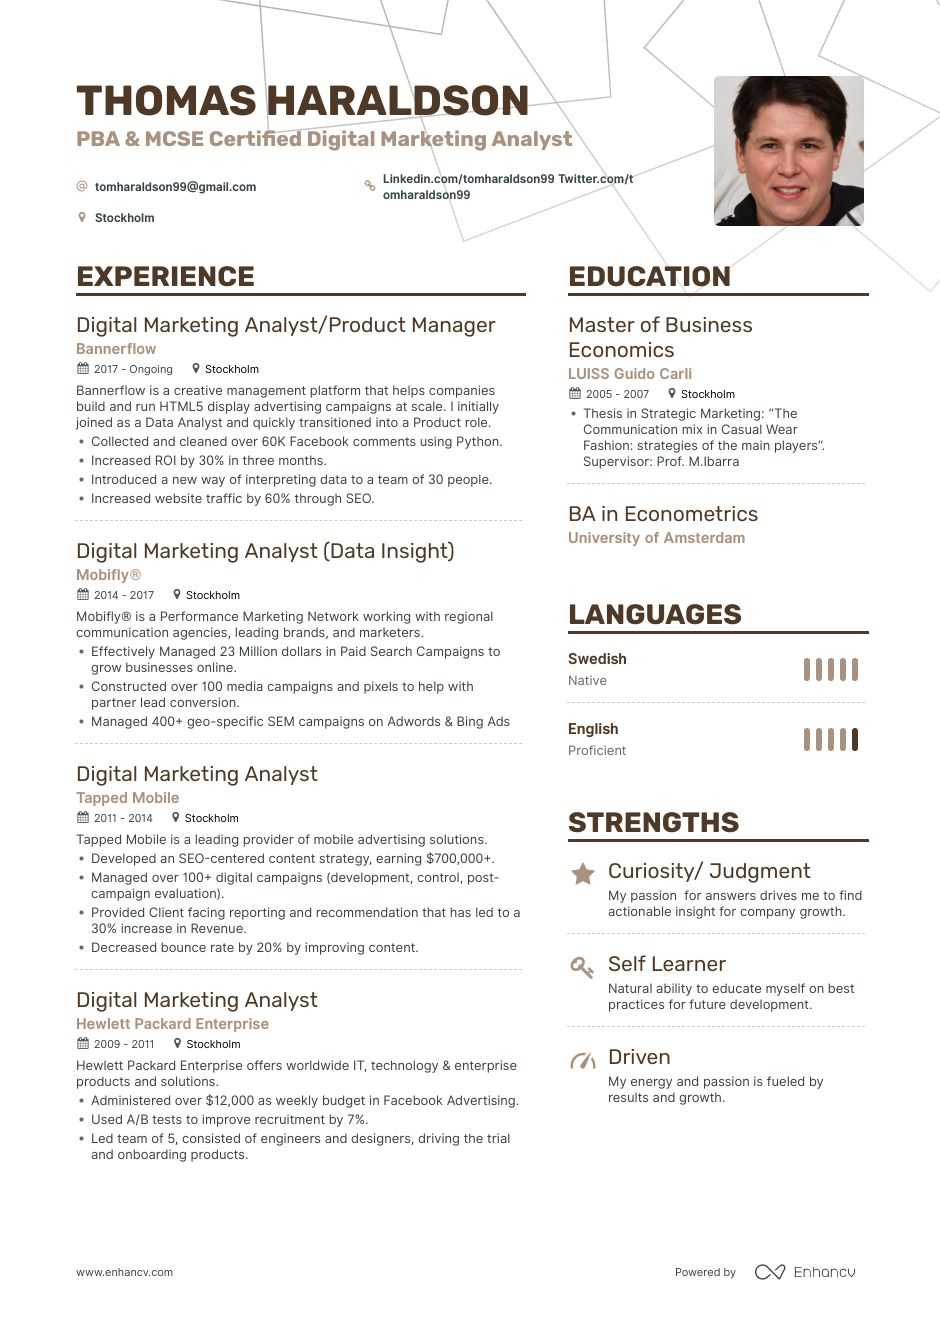 Data Analyst Entry Level Resume Example and guide for 2019